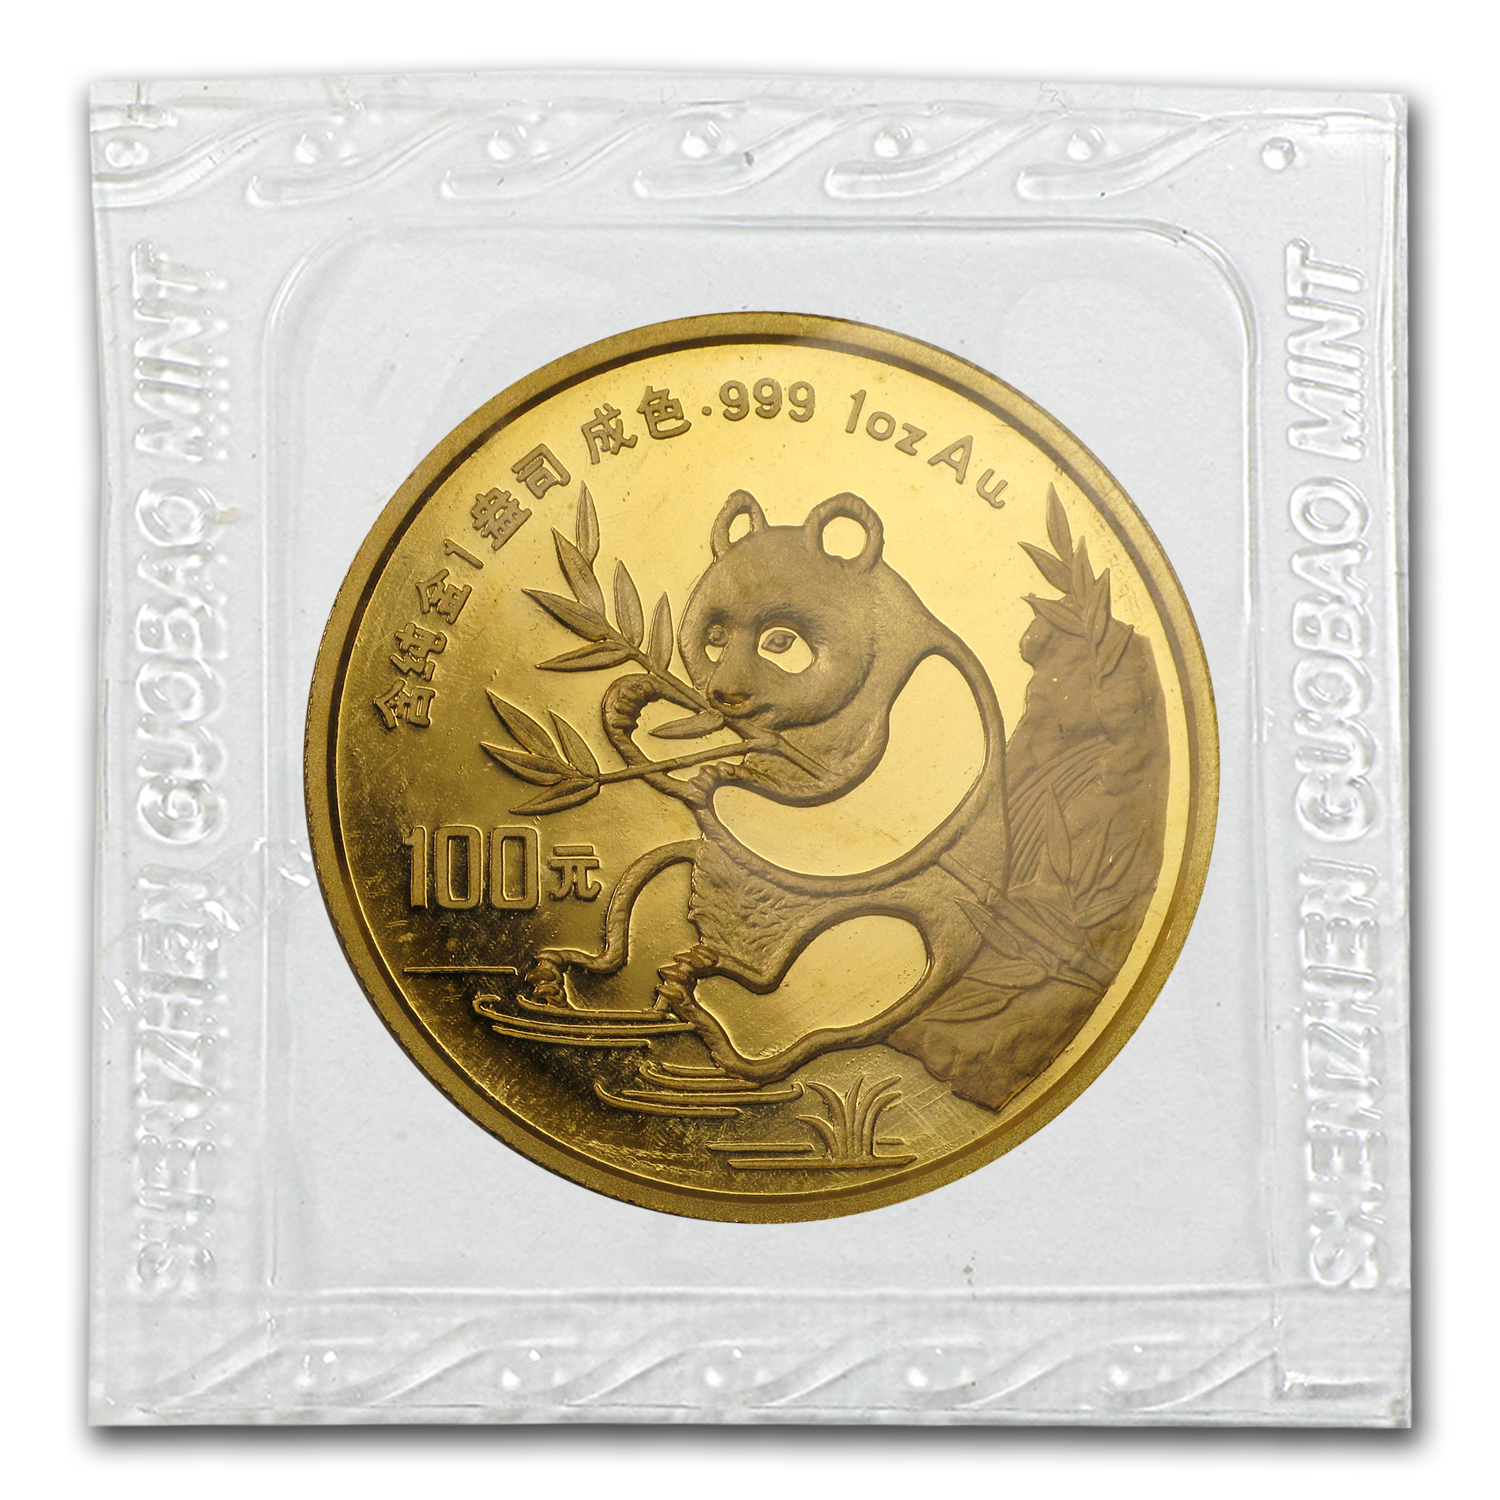 1991 China 1 oz Gold Panda Small Date BU (Sealed)